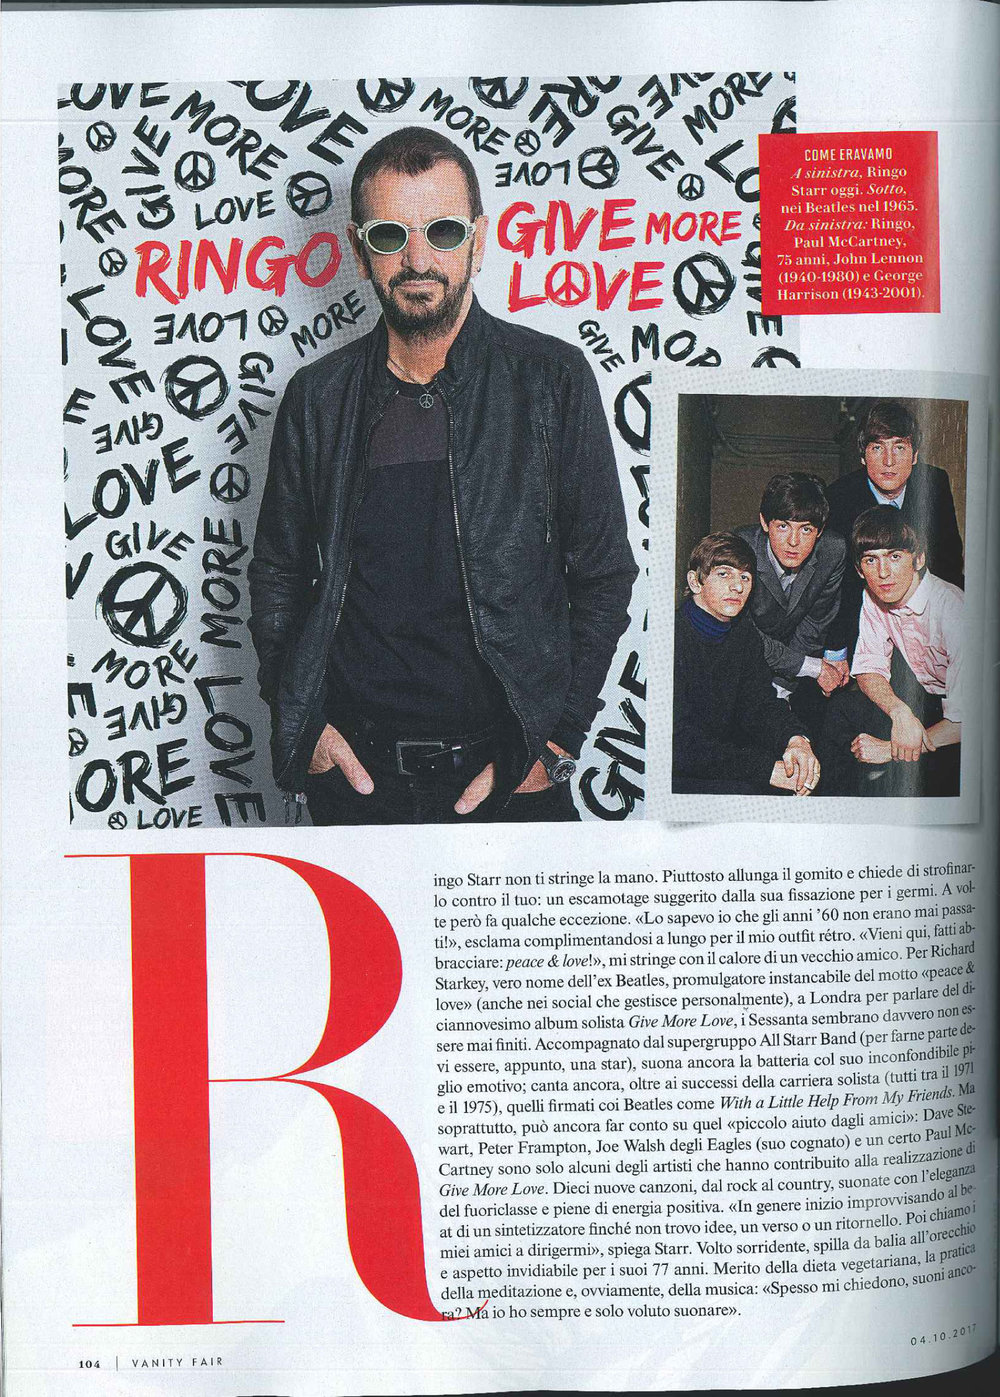 Vanity Fair: Ringo Starr interview